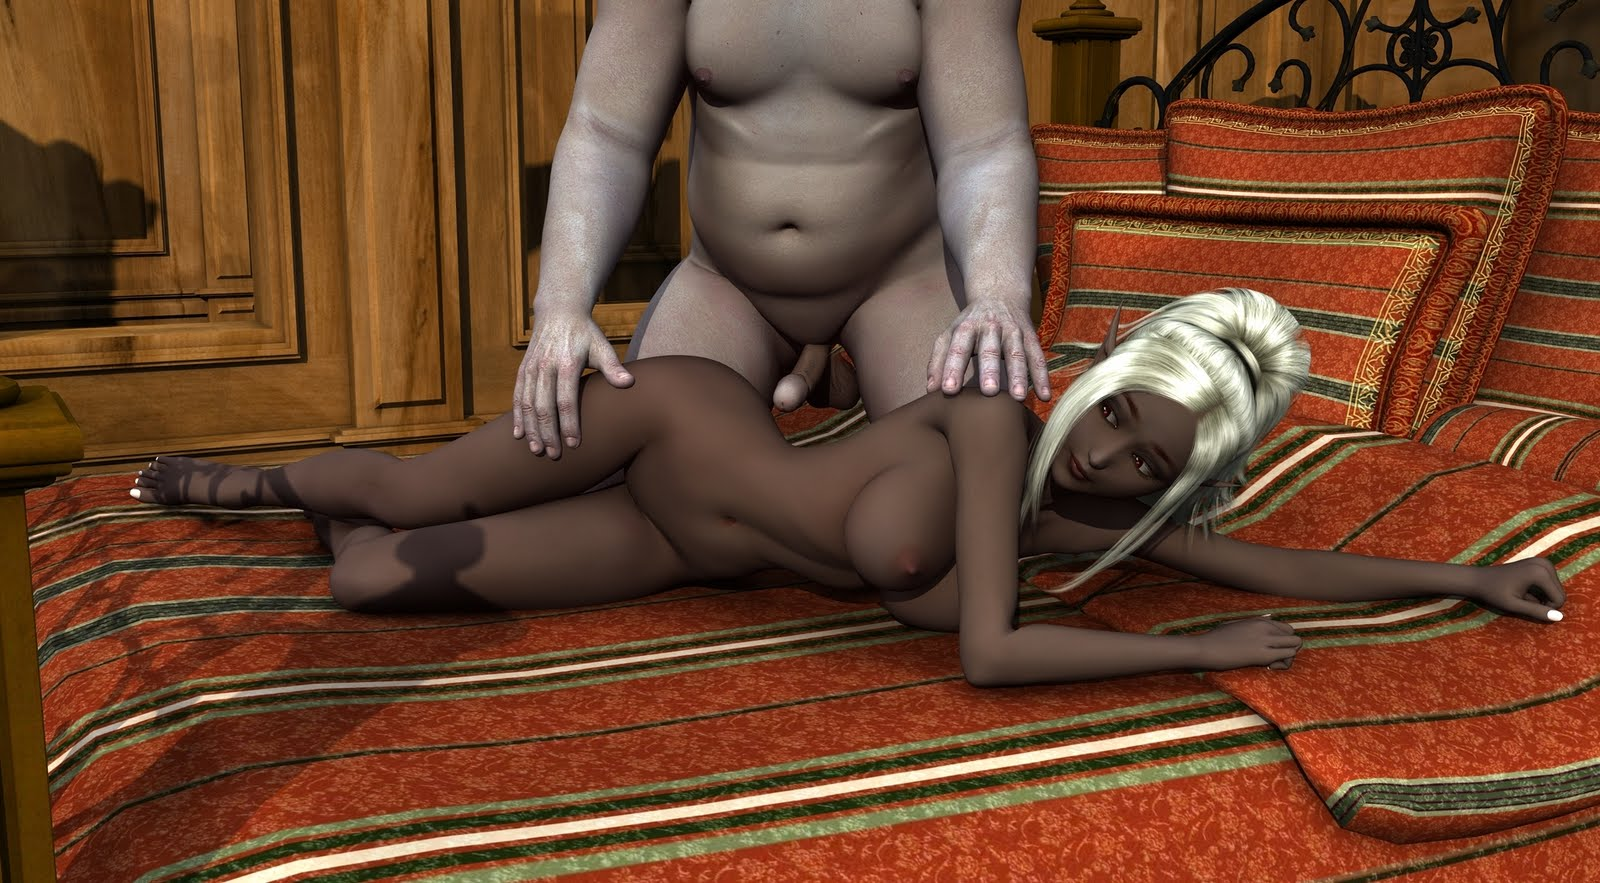 World of Porncraft 3d sex games erotic picture